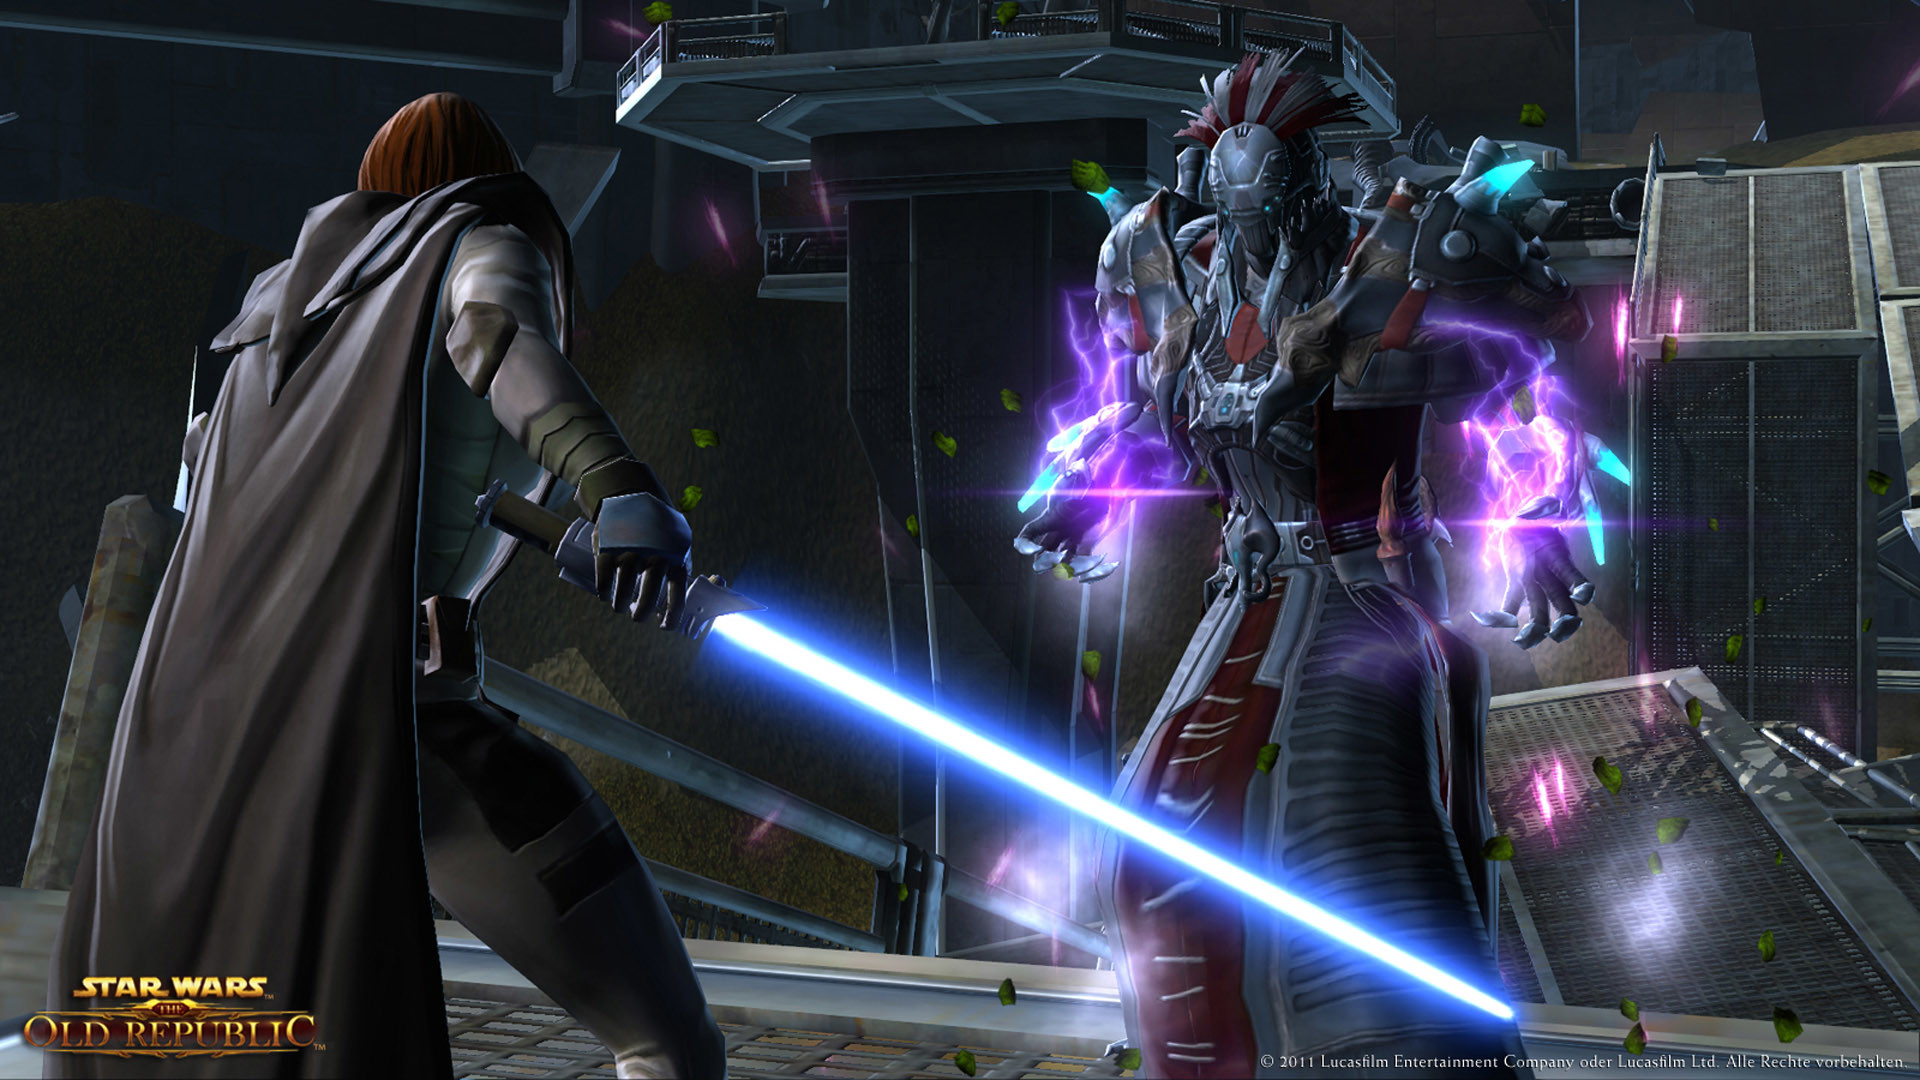 Star Wars Knights Of The Old Republic Wallpaper Hd Posted By John